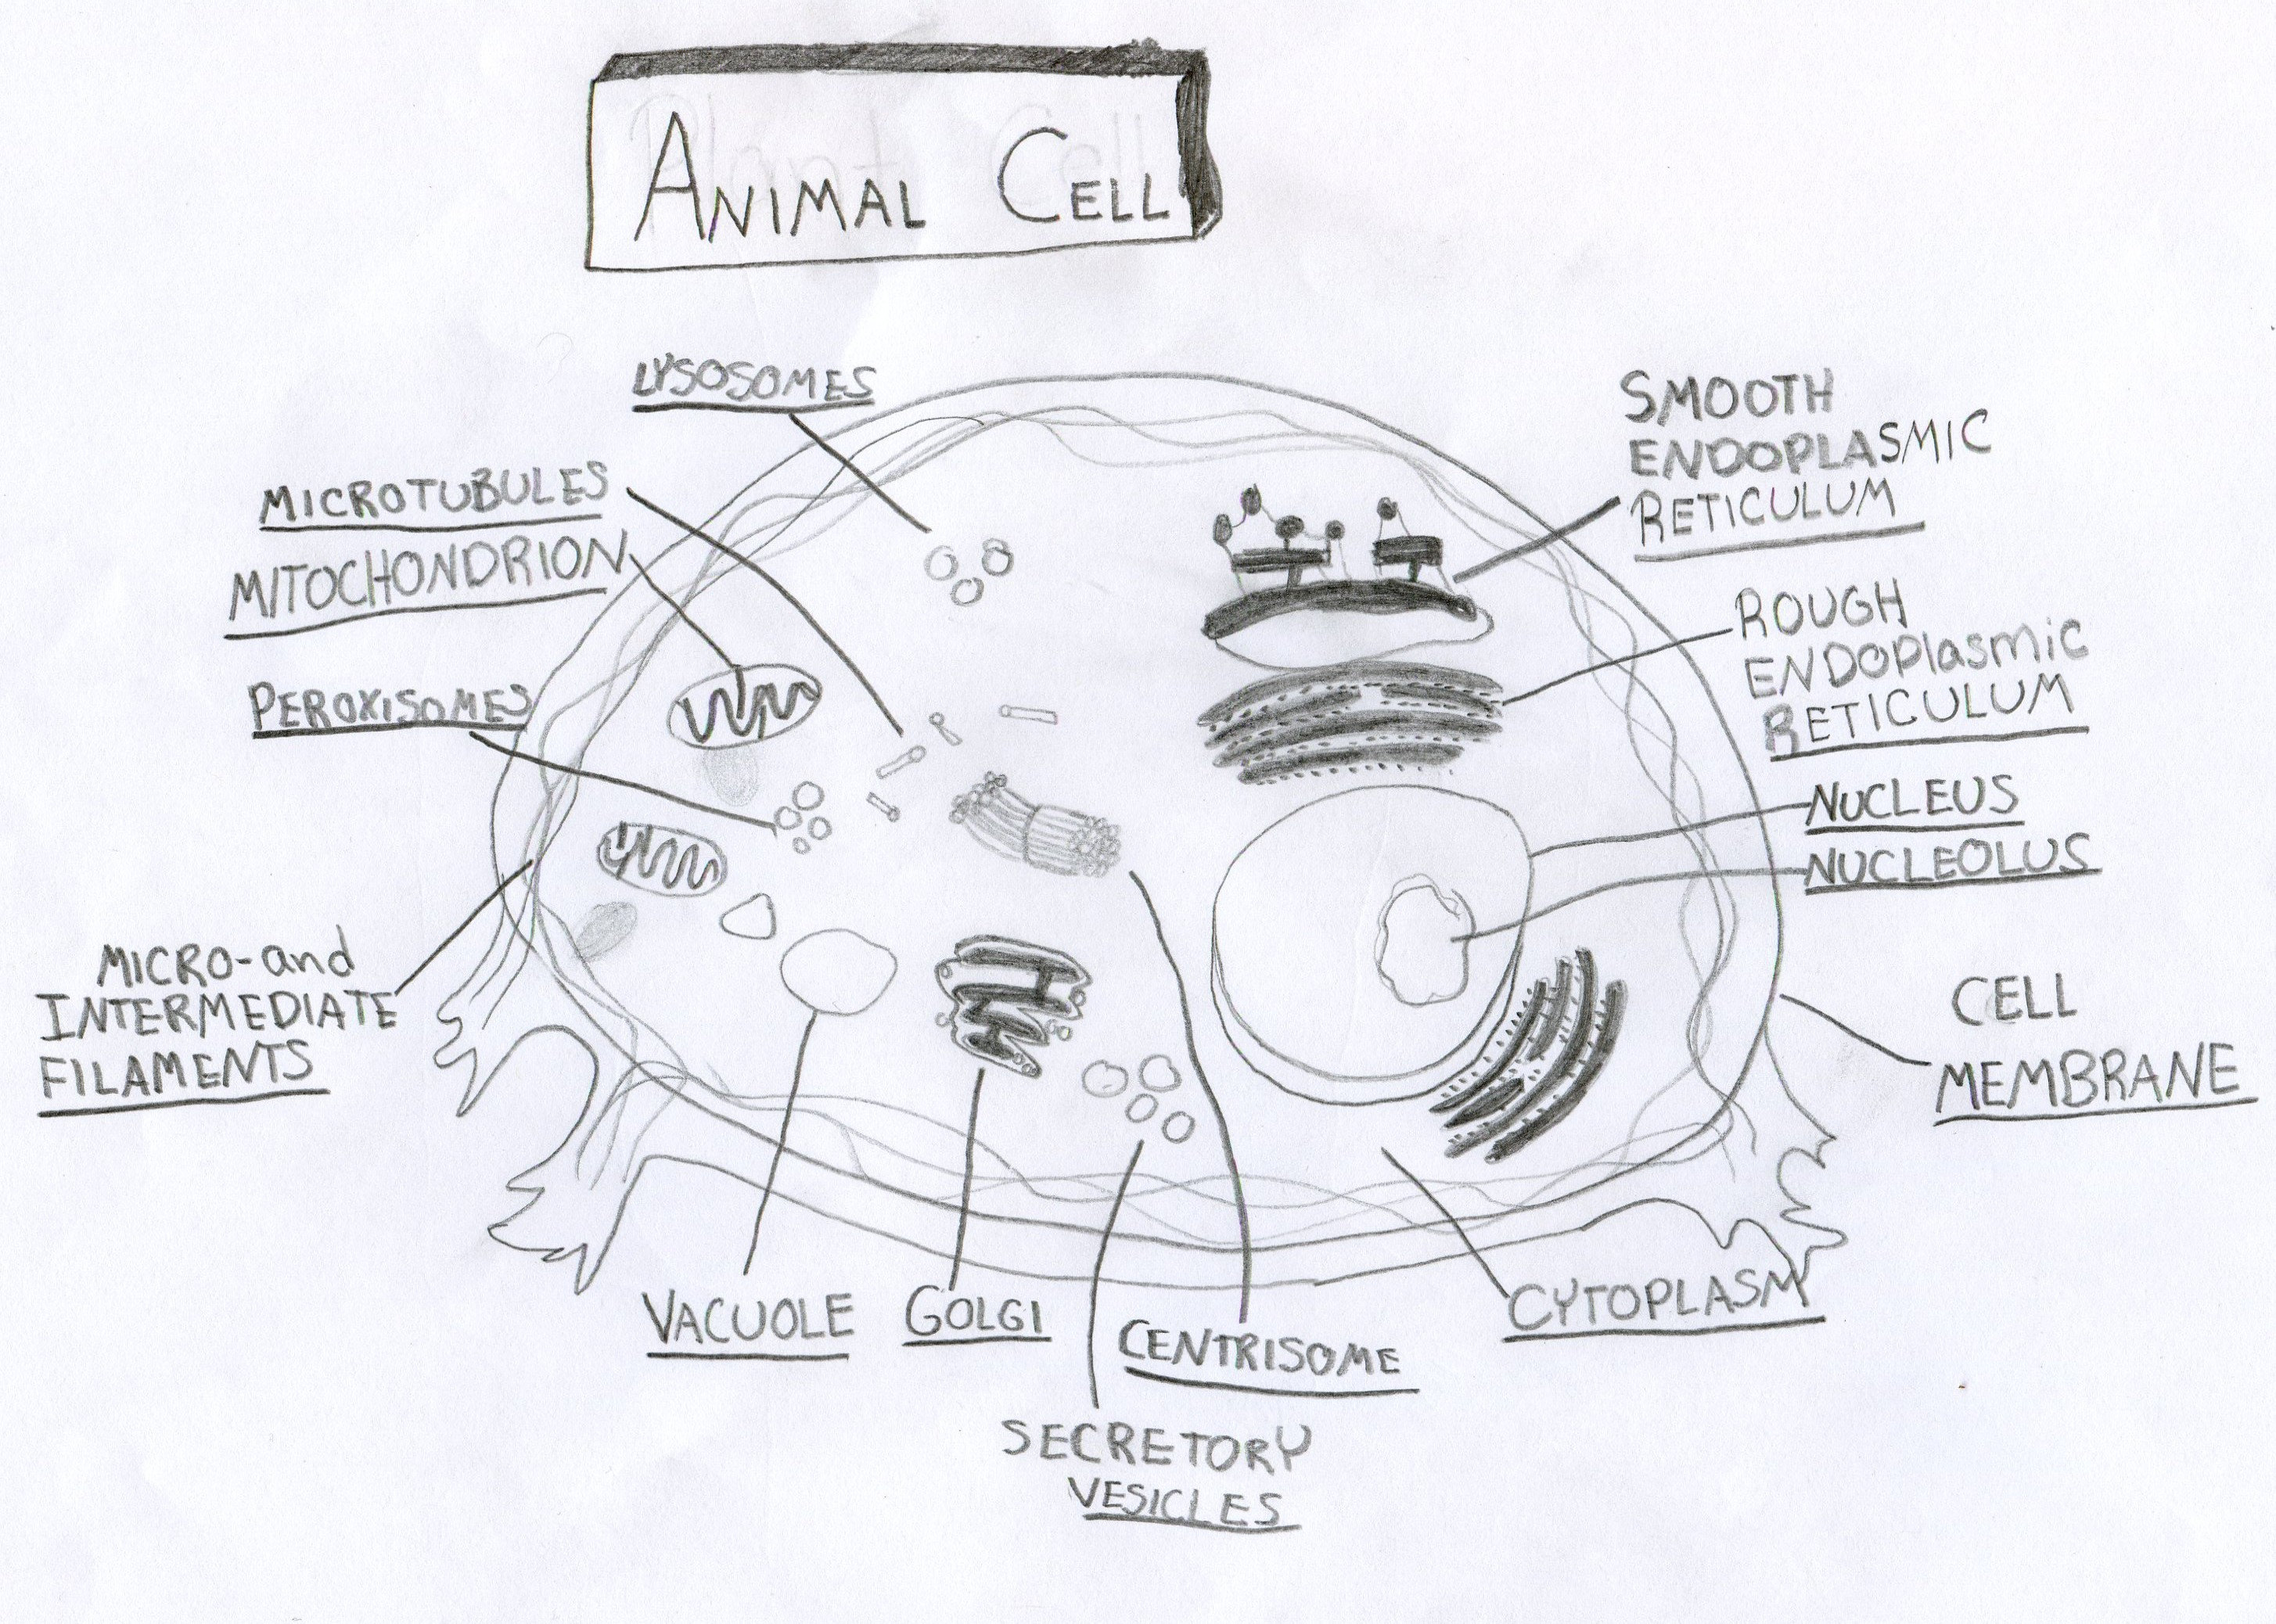 Secretory Vesicles Animal Cell